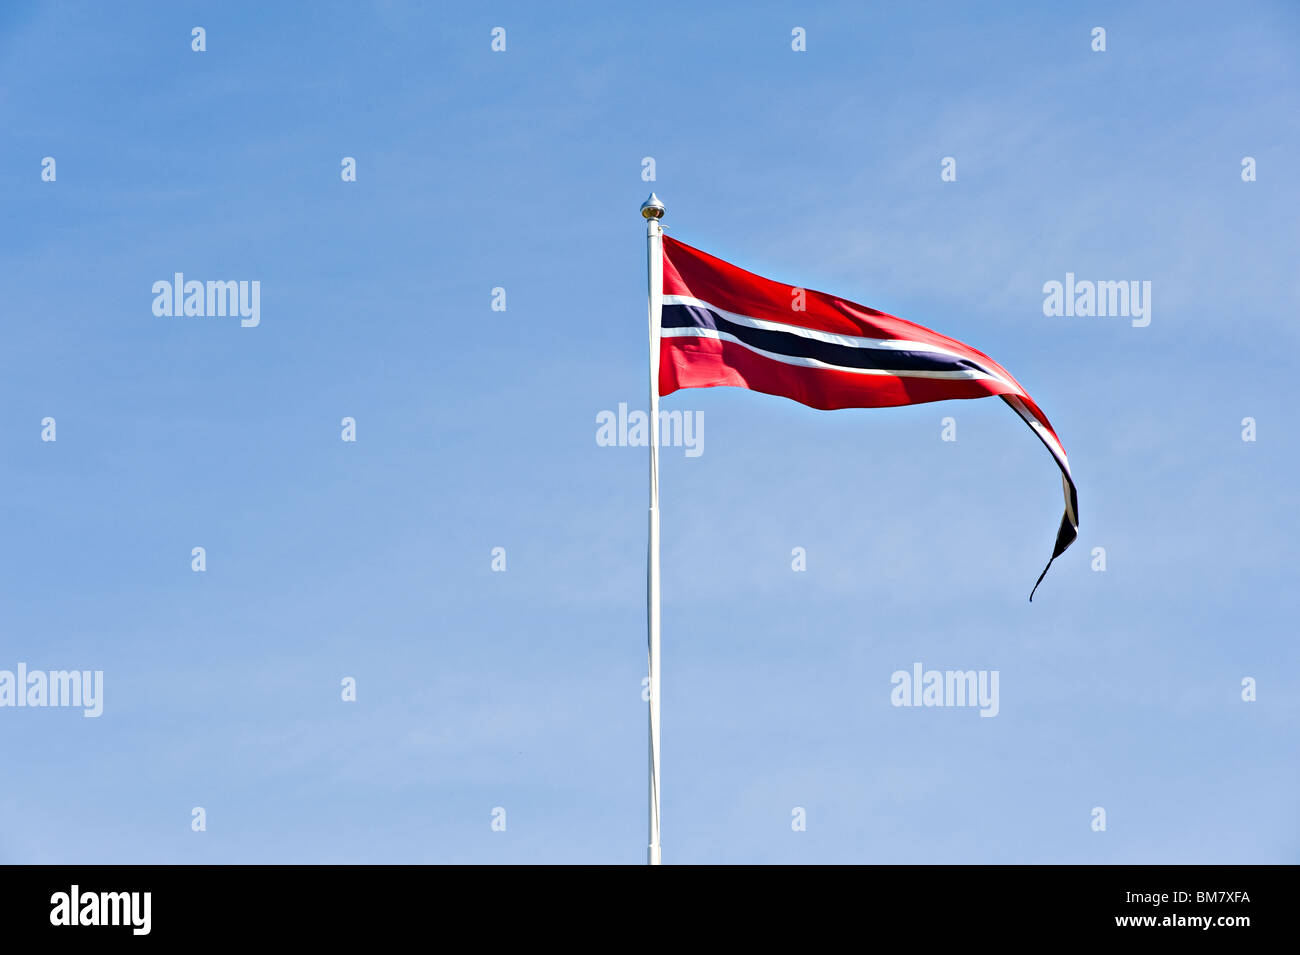 A Norwegian Vimple [Pennant], Narrow Long Flag Flying from Flagpole in Clear Blue Sky in Bergen Norway - Stock Image